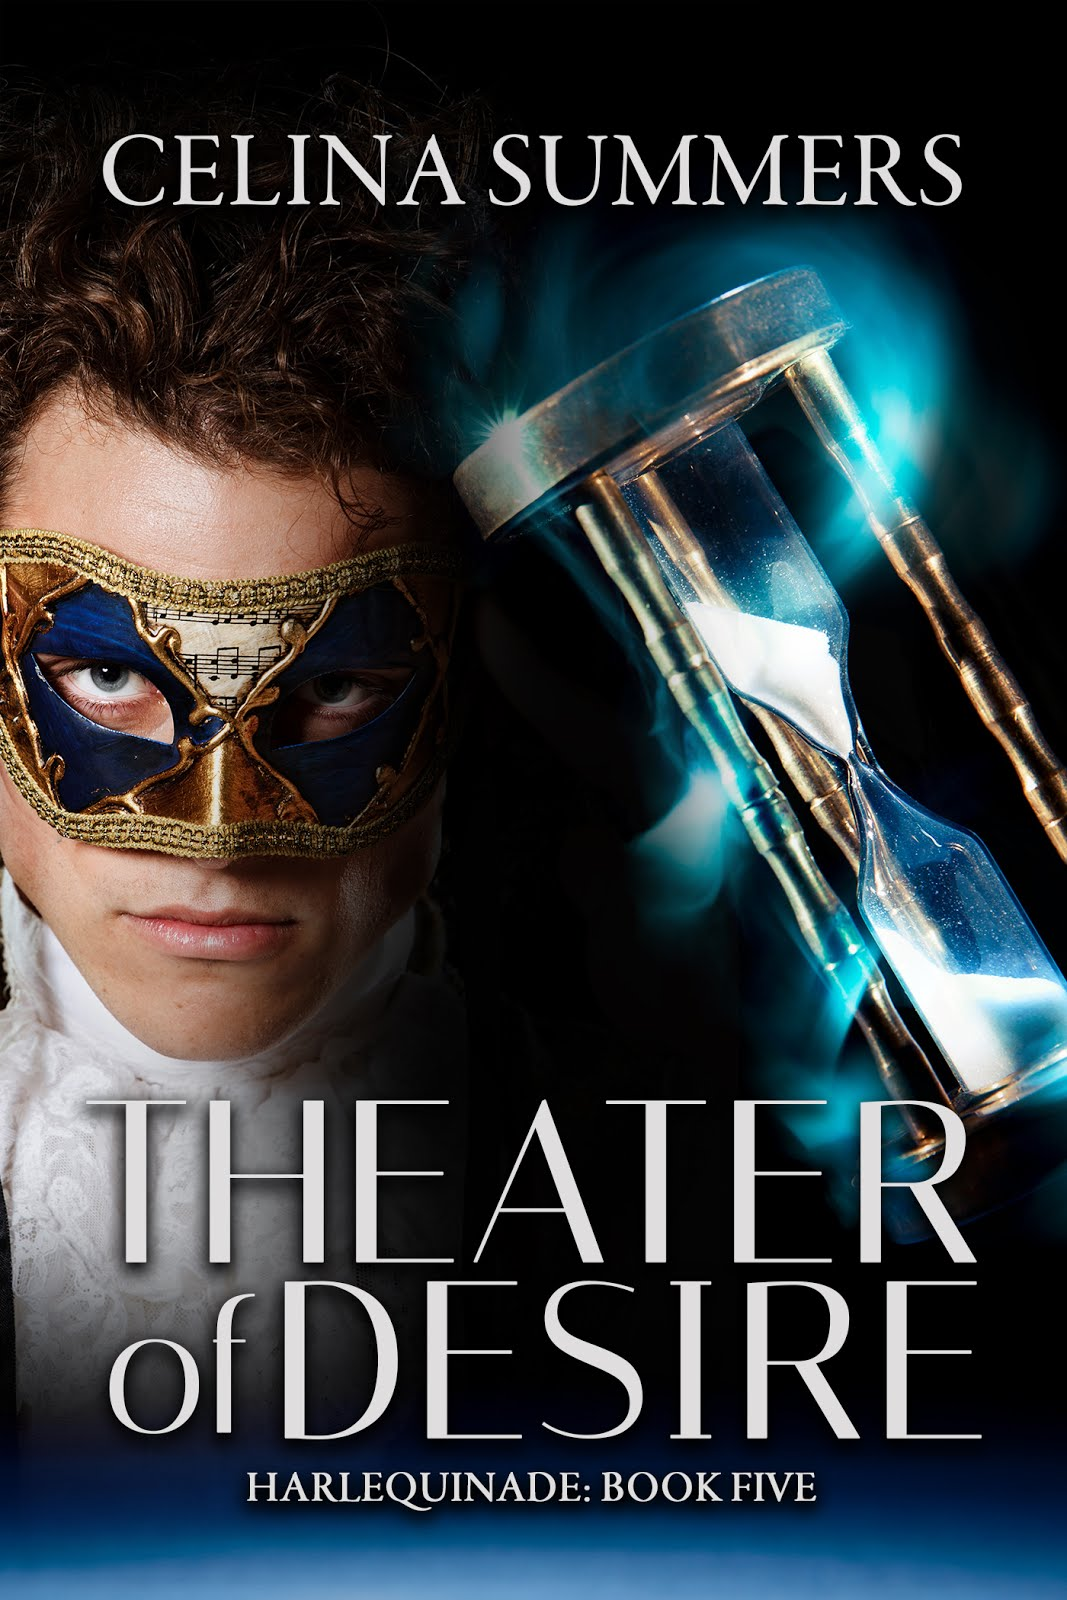 Theater of Desire